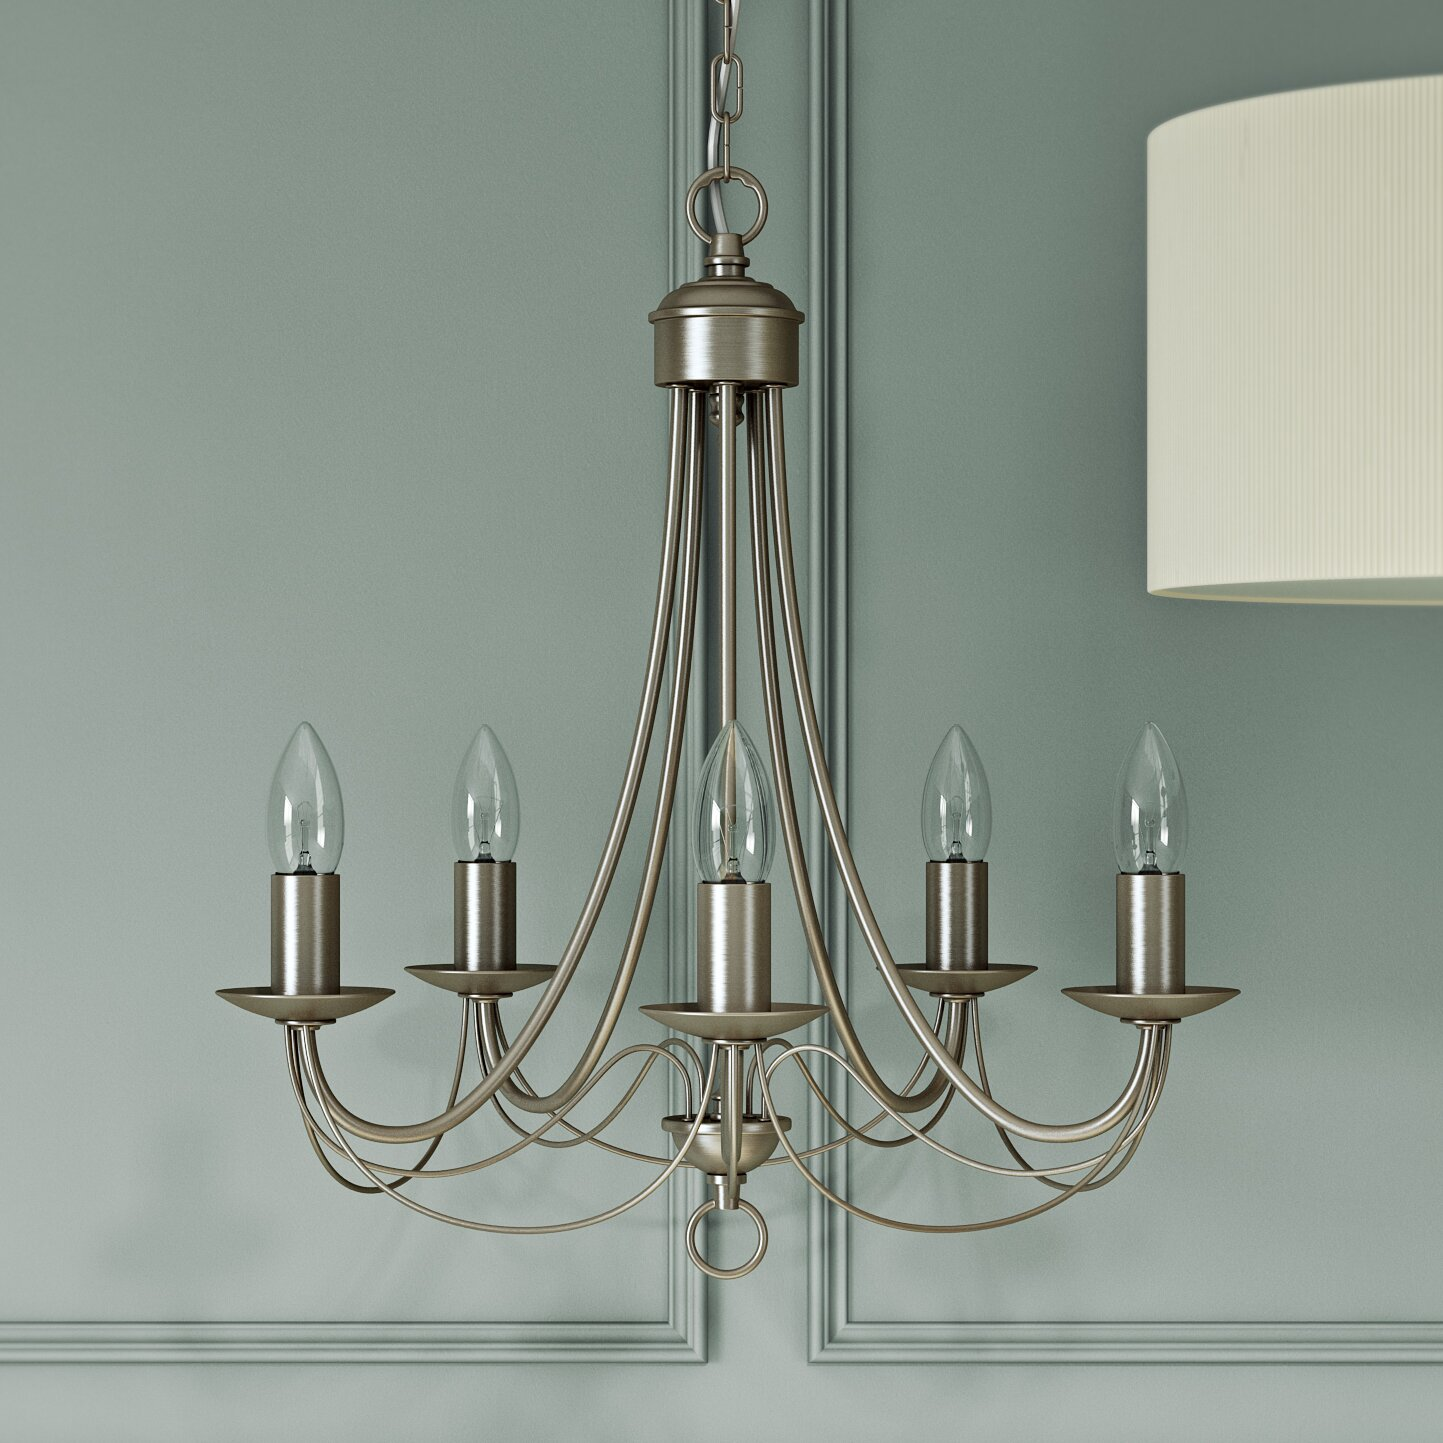 Wayfair Lights: Searchlight Maypole 5 Light Candle-Style Chandelier